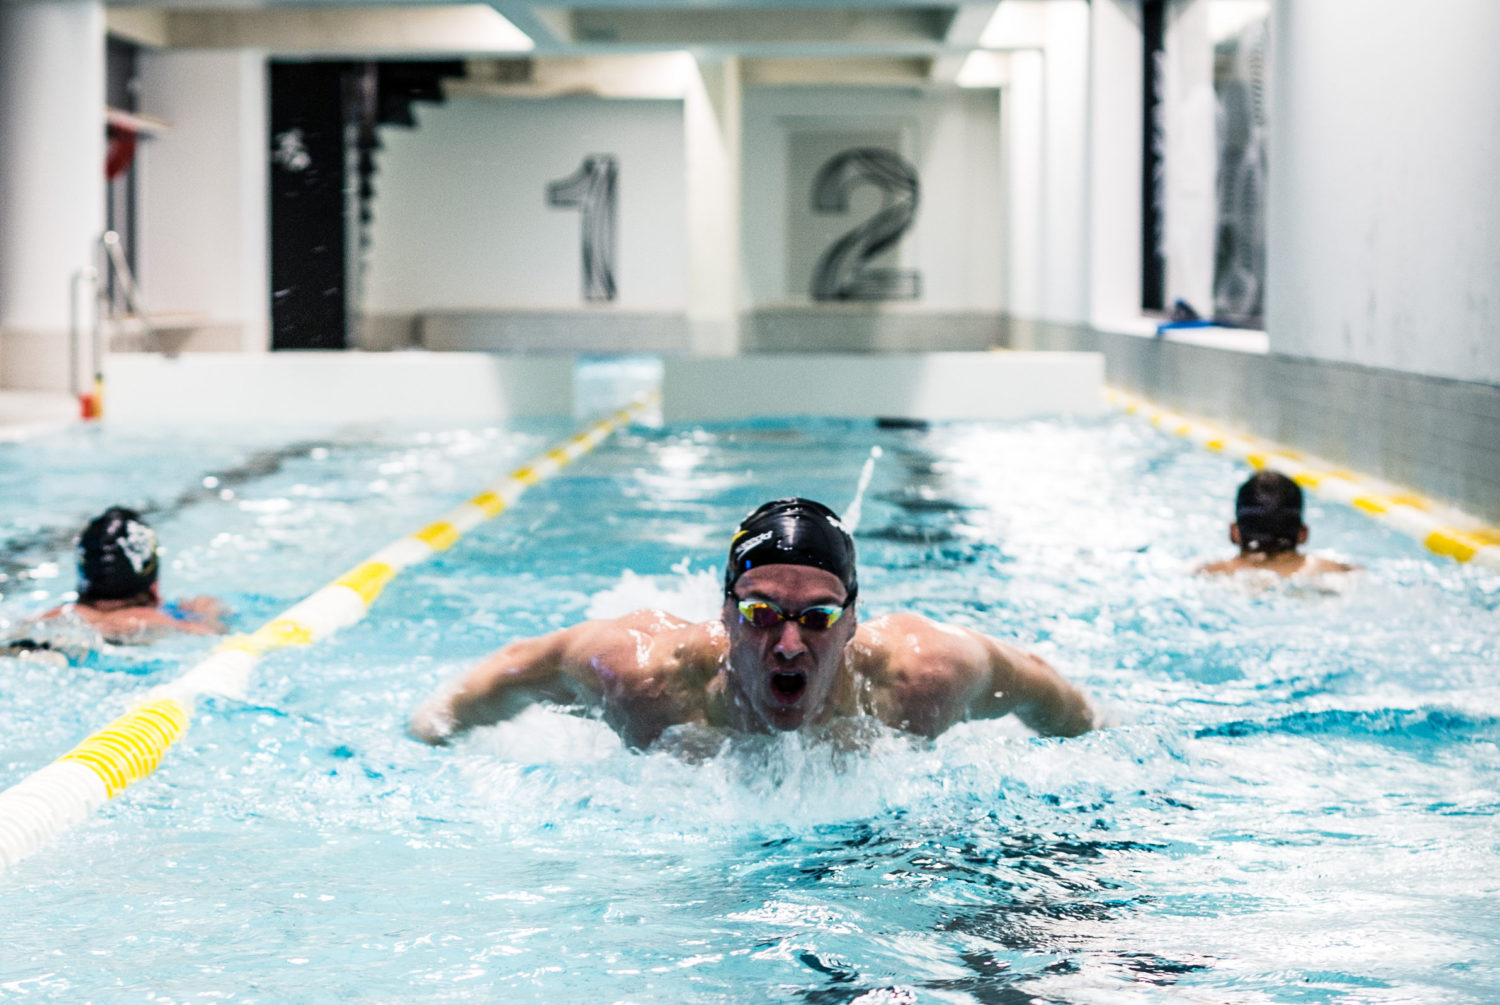 SwimGym clinics, masterclasses and workshops about swimming. Under supervision of founder Johan Kenkhuis, Olympic swimming medalist. Train Like A Pro.